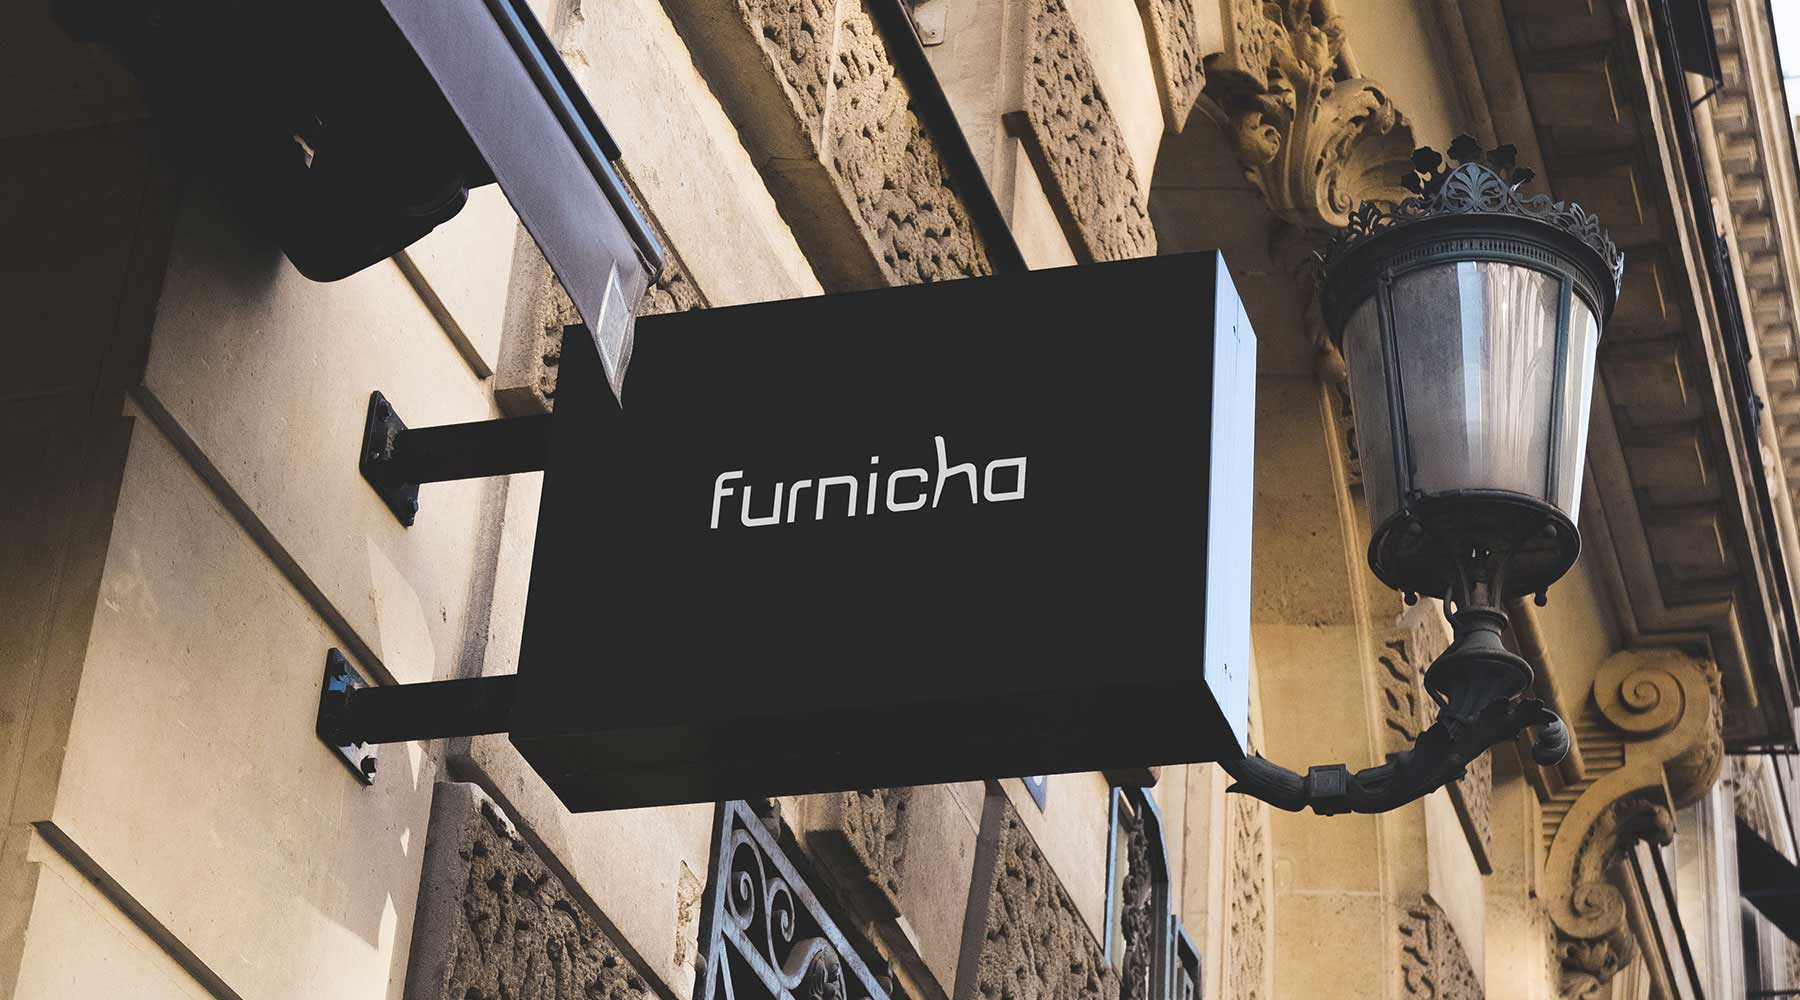 furnicha office furnitures logo tasarımı eskişehir